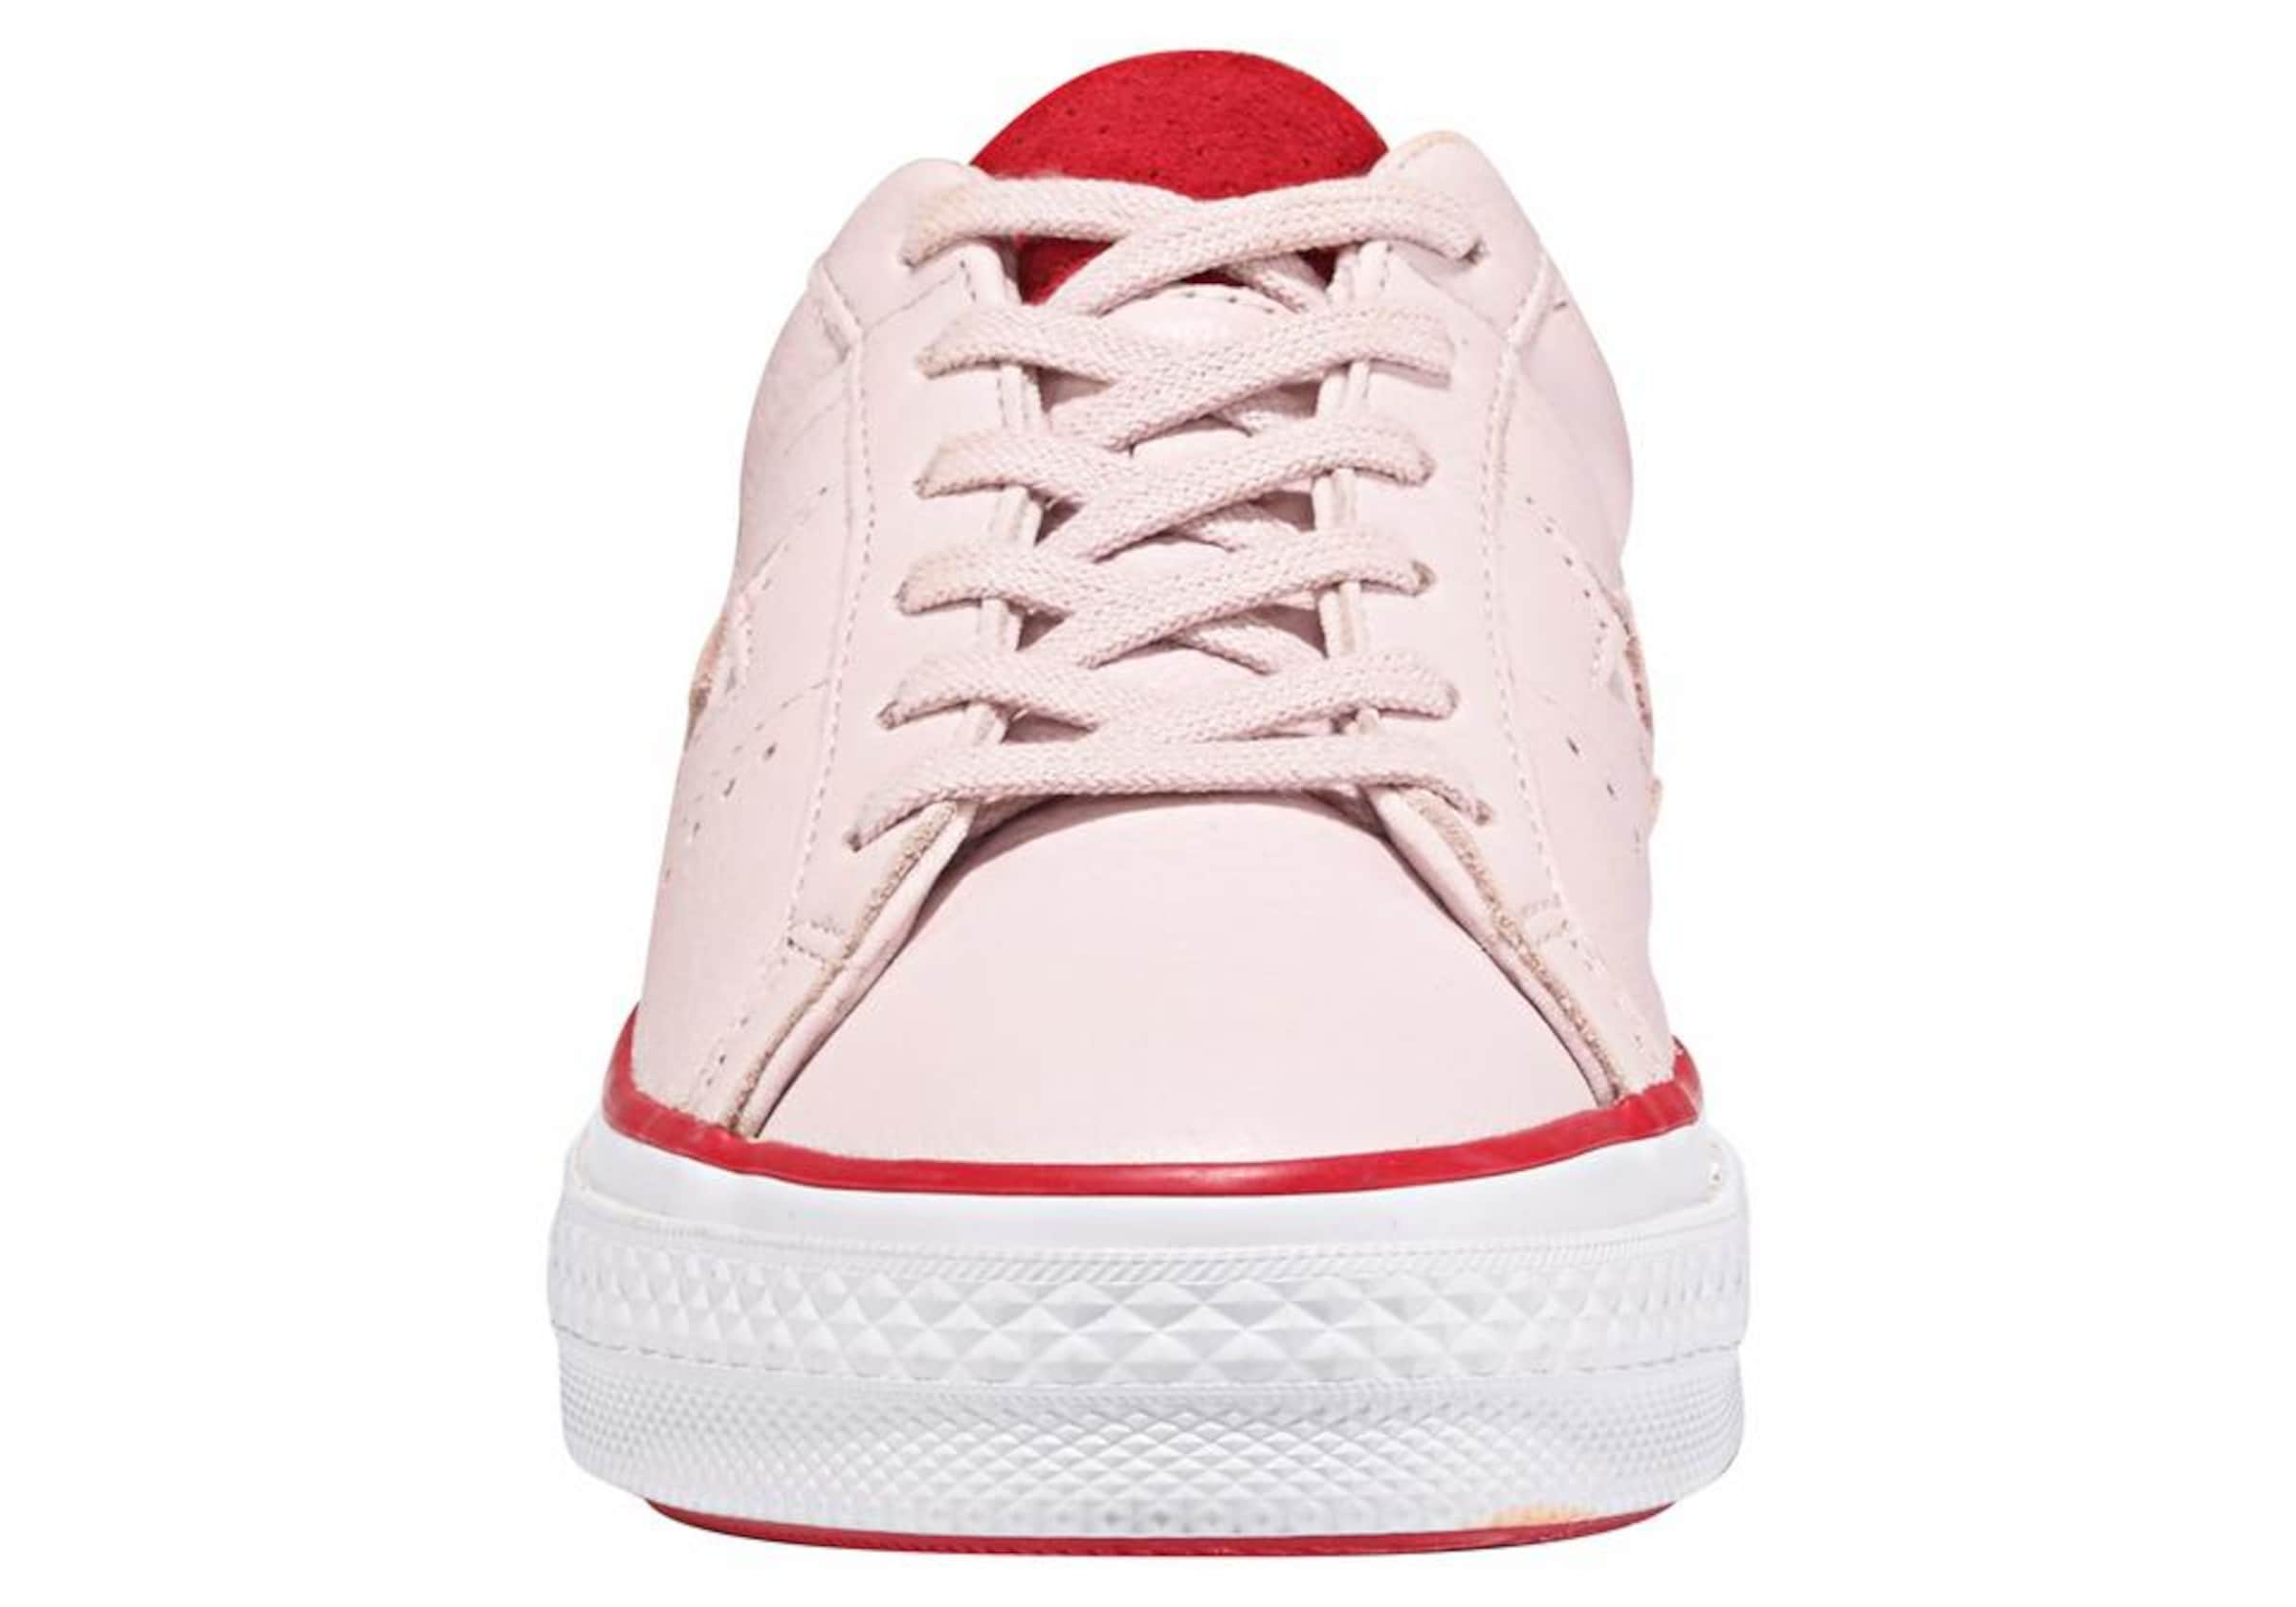 Baskets Ox' Converse En Star 'one RoseRouge Clair Basses OukZwXTPi